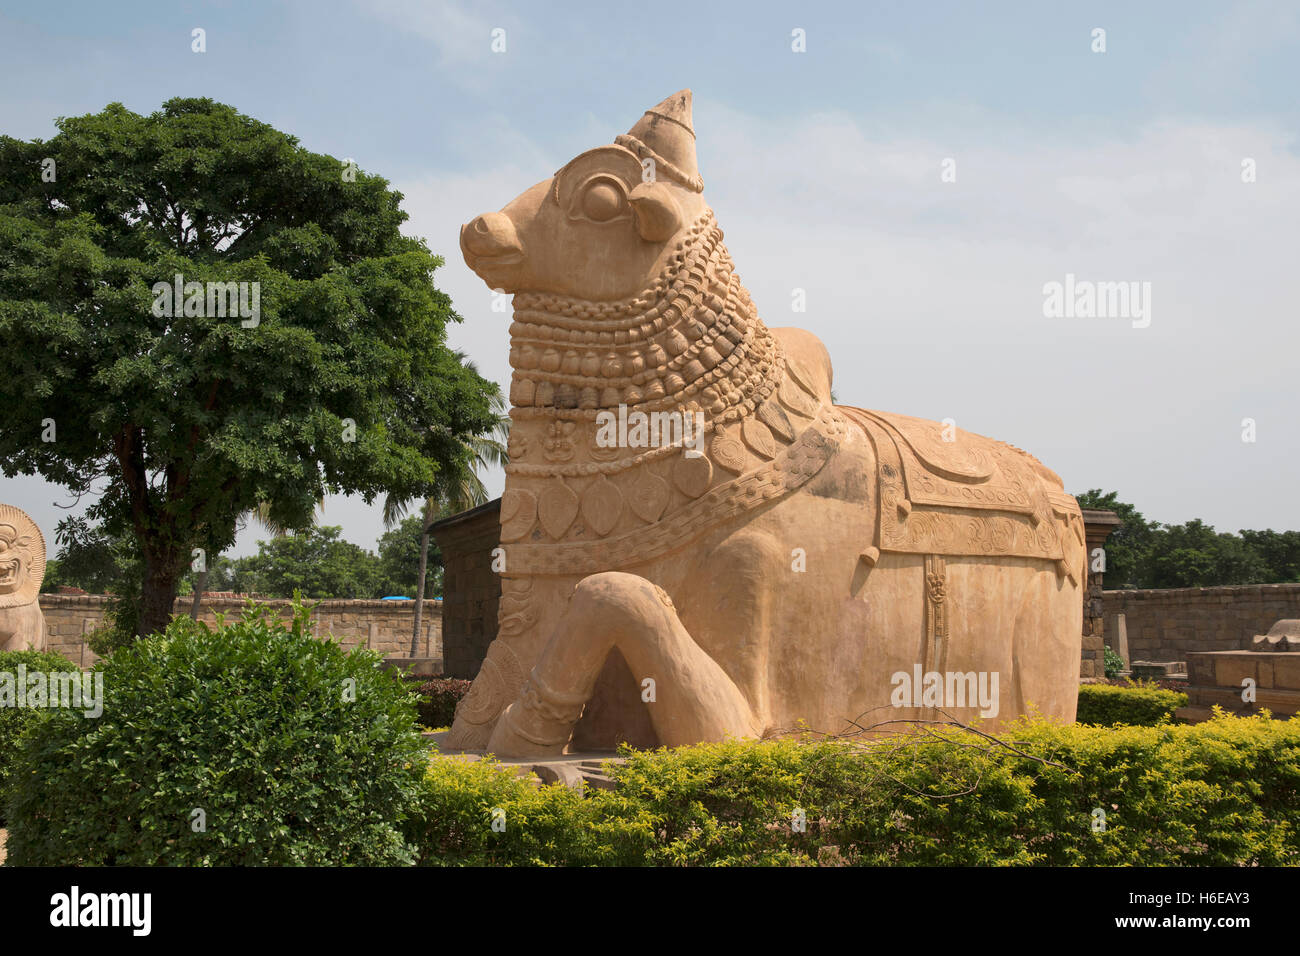 Huge Nandi bull at the entrance, Brihadisvara Temple Stock Photo - Alamy